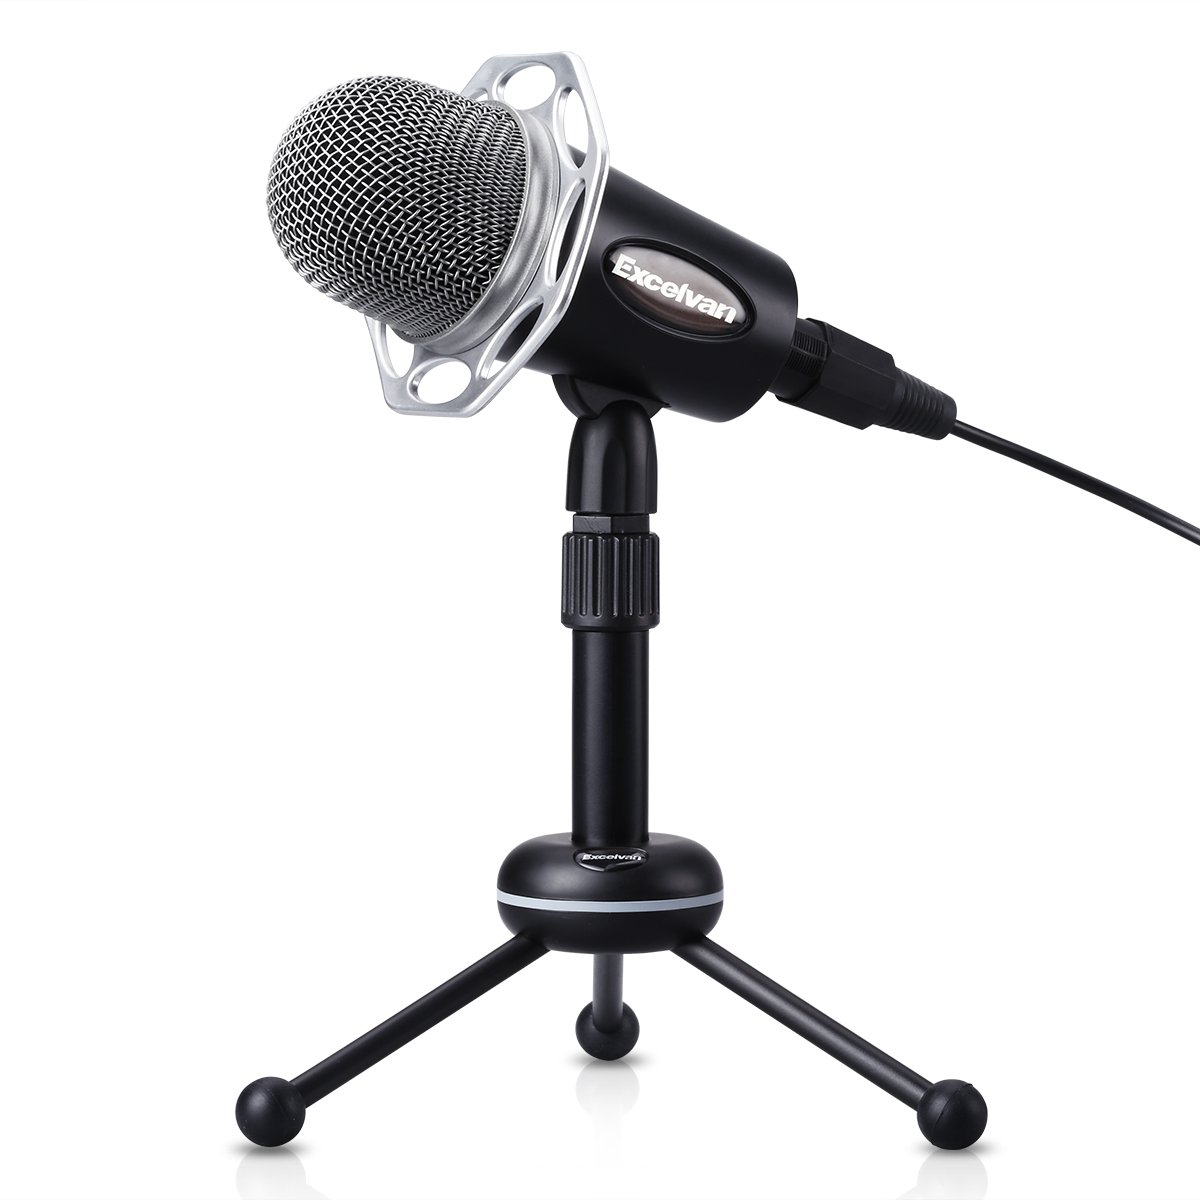 Excelvan Condenser Microphone Black Y20 3.5mm Desktop Microphone with Volume Control and Adjustable Table Tripod Stand Broadcasting Recording Podcasting Studio Mic for Mobile Phones, Laptops, Desktop